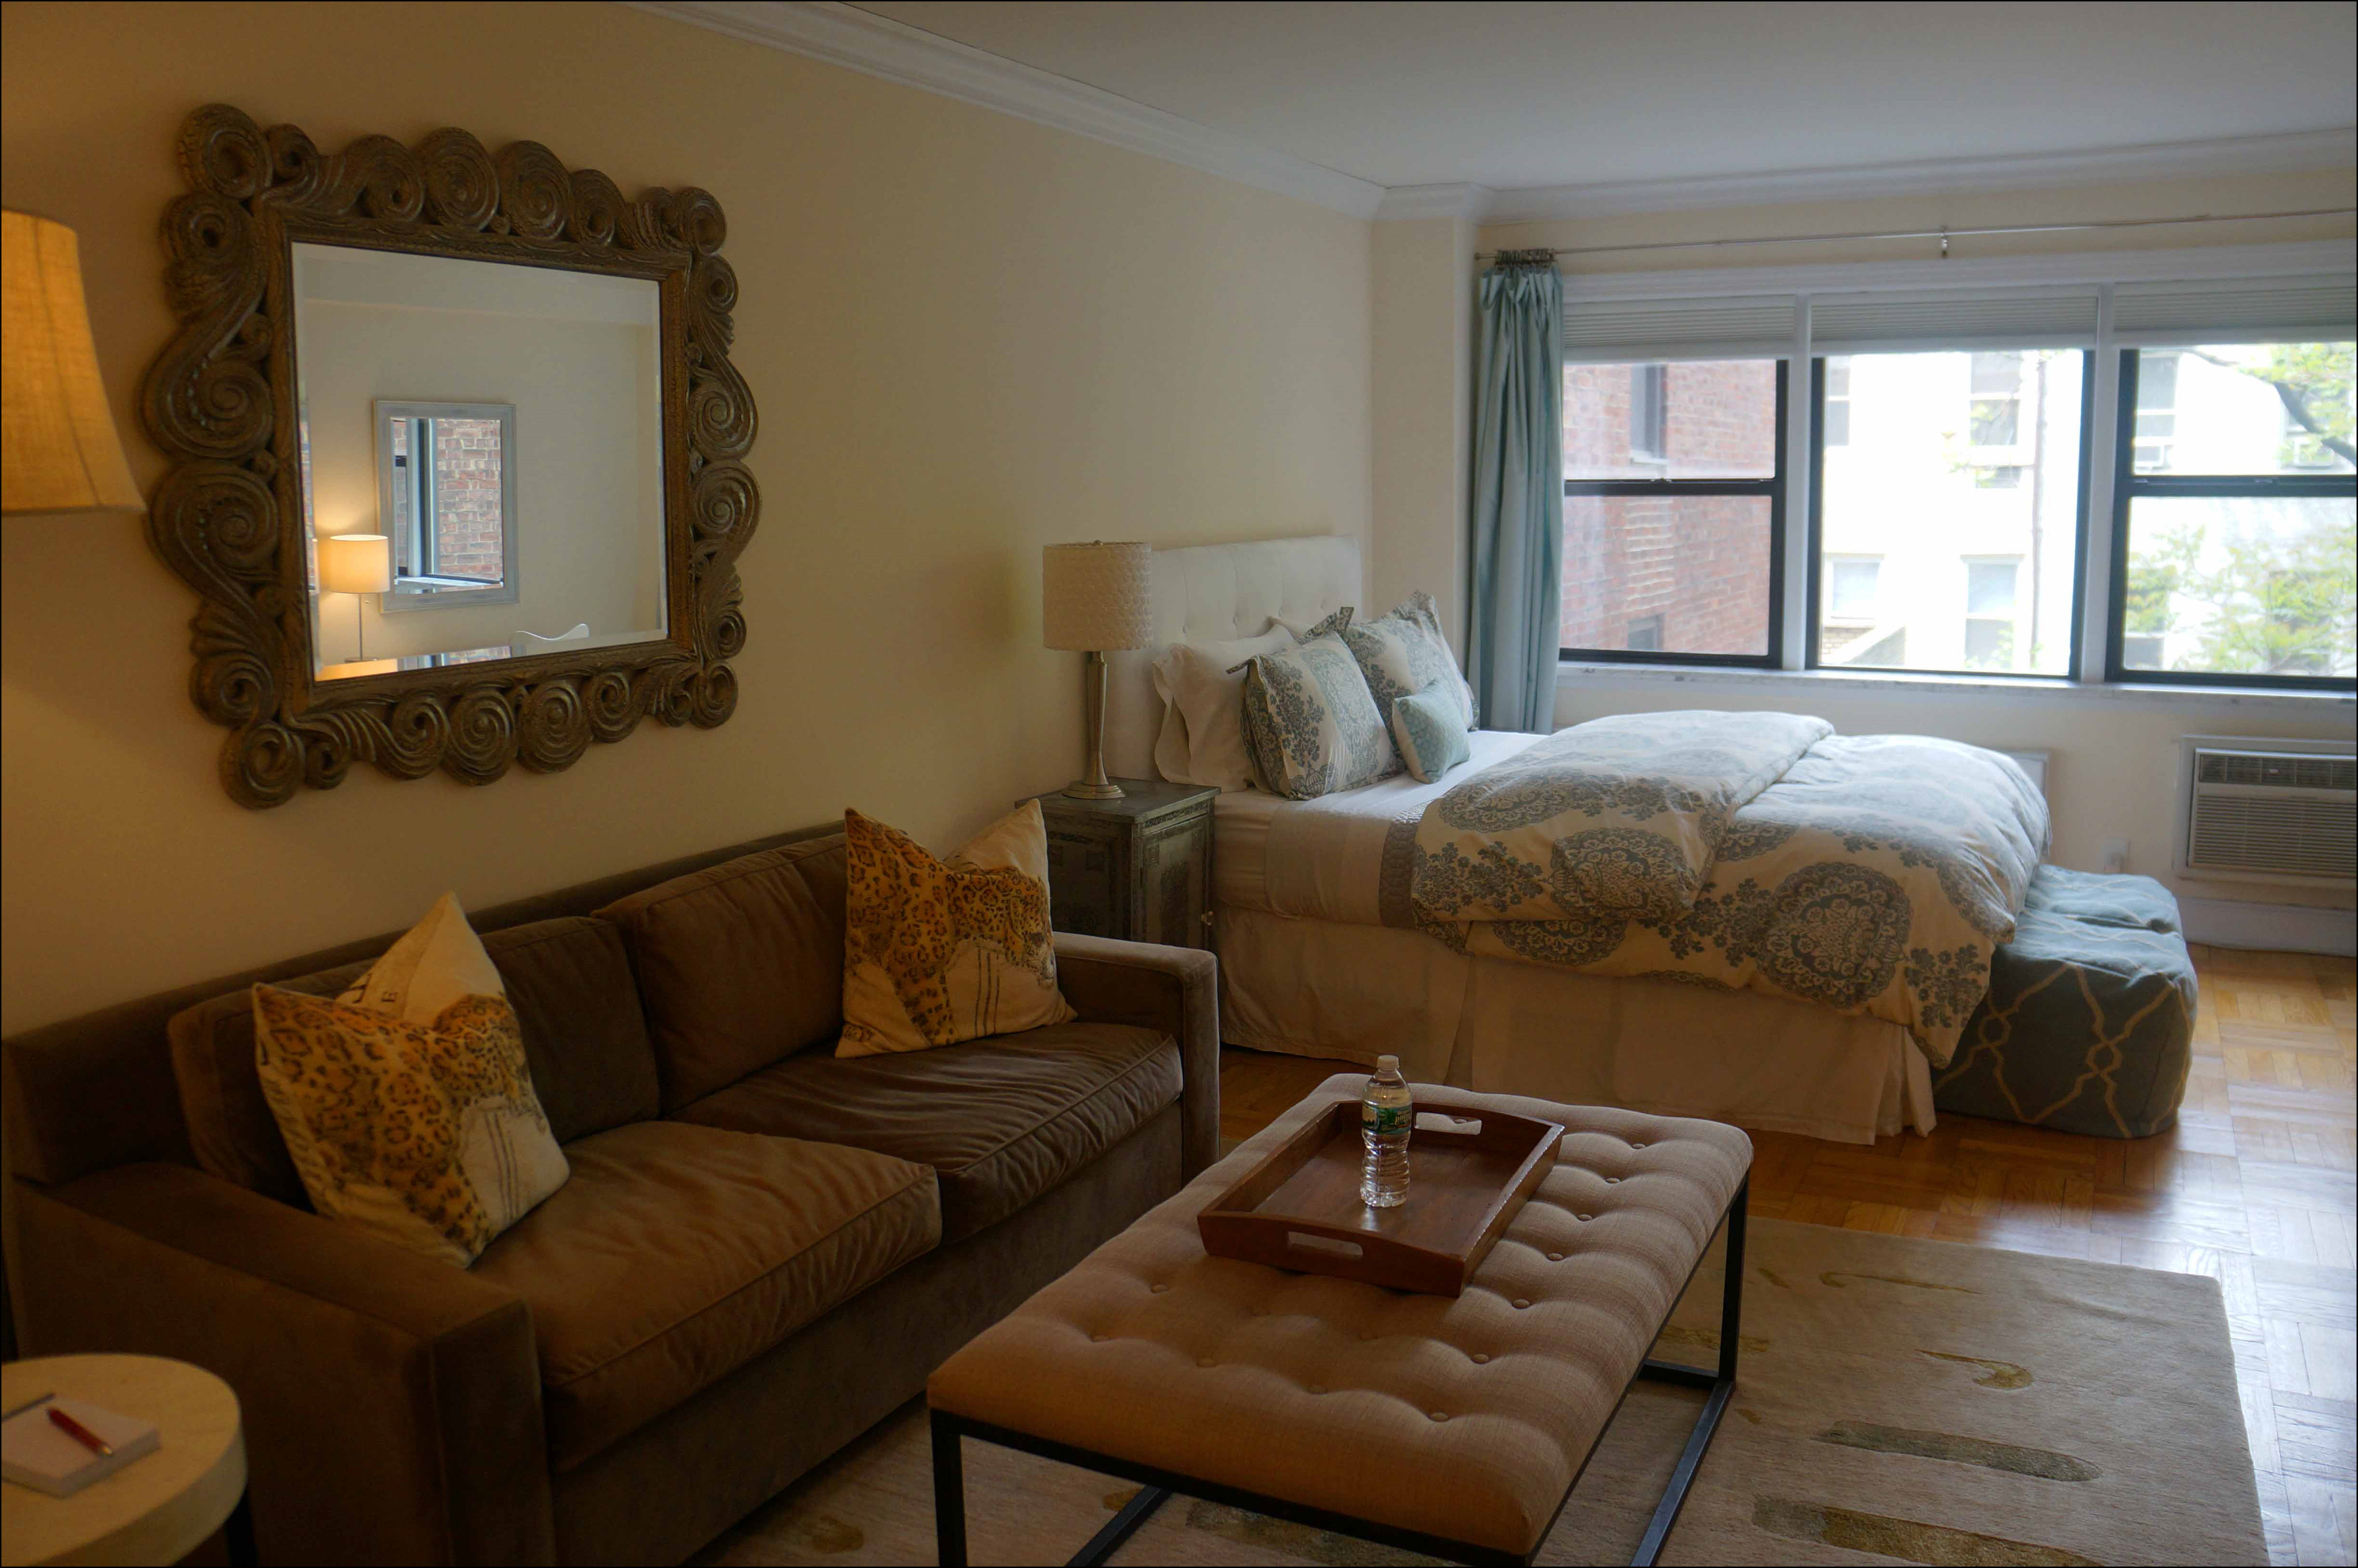 Residence rentals in new york city and manhattan for Studio apartment in new york city